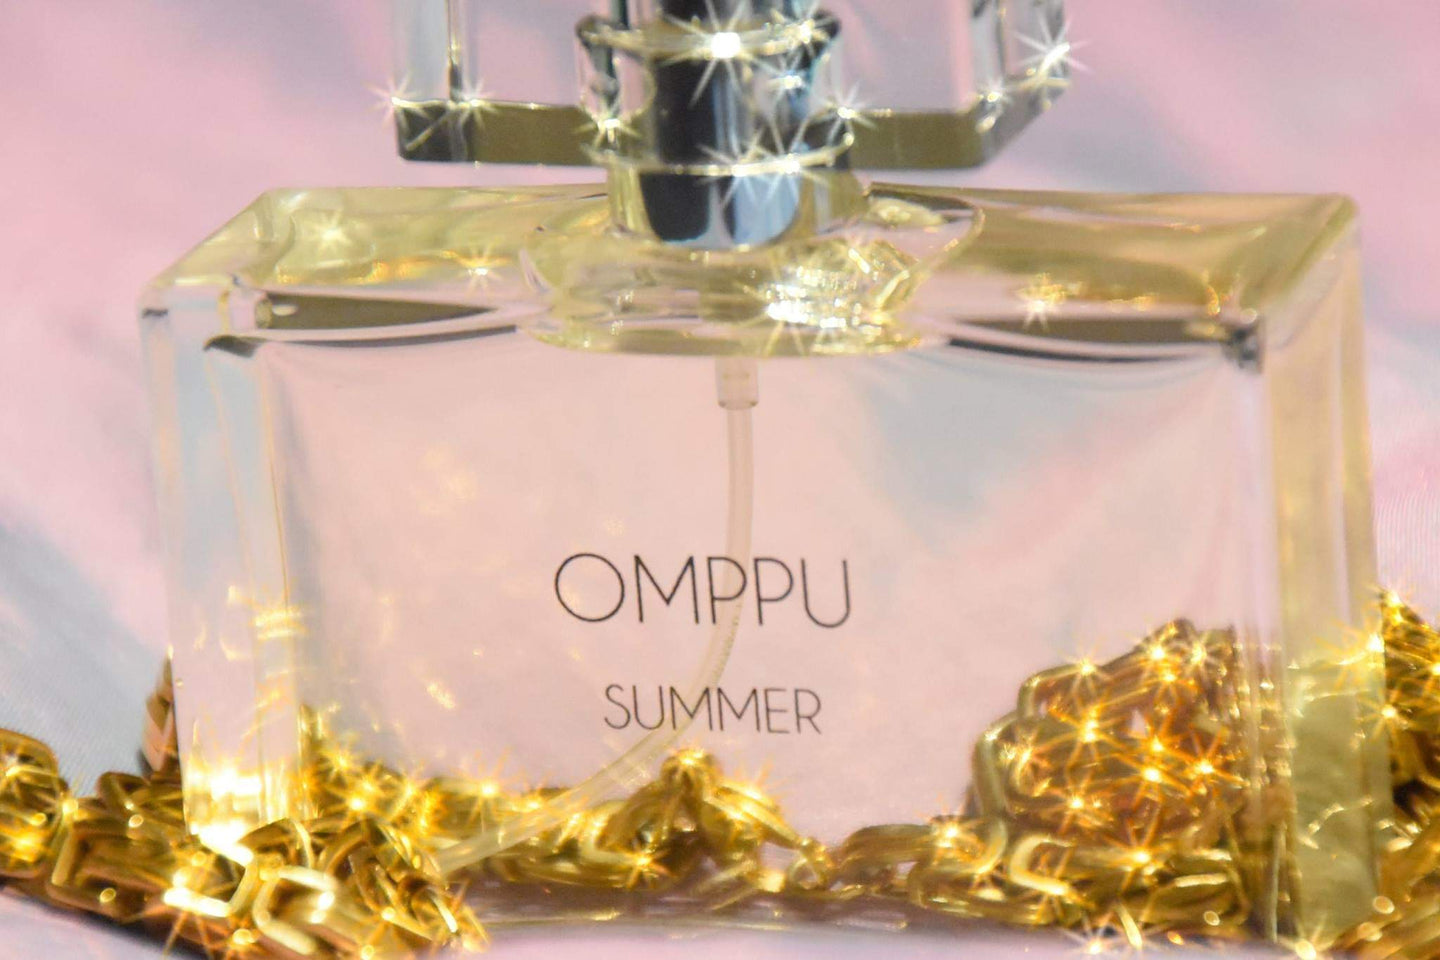 Omppu summer EdP 50ml Herrdoft